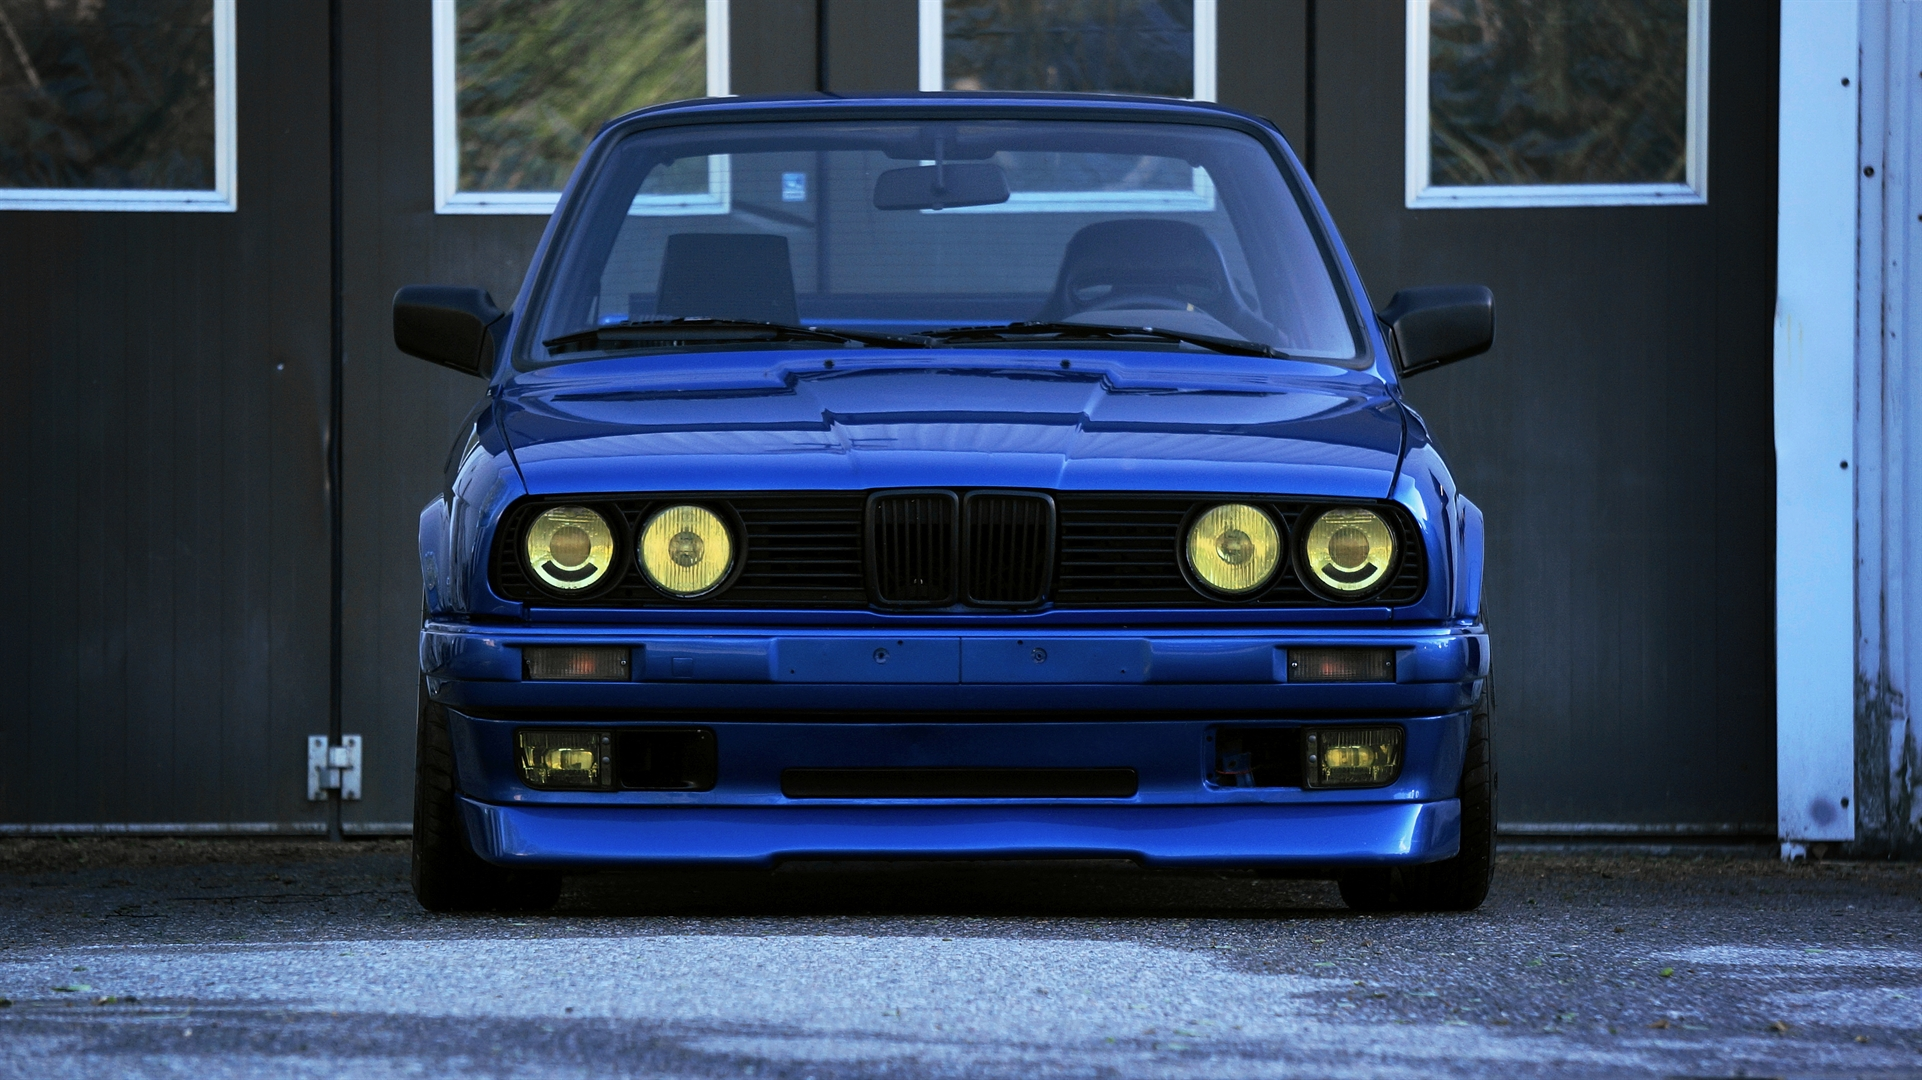 Mercedes Modified Cars Wallpapers 1987 Bmw E30 325i